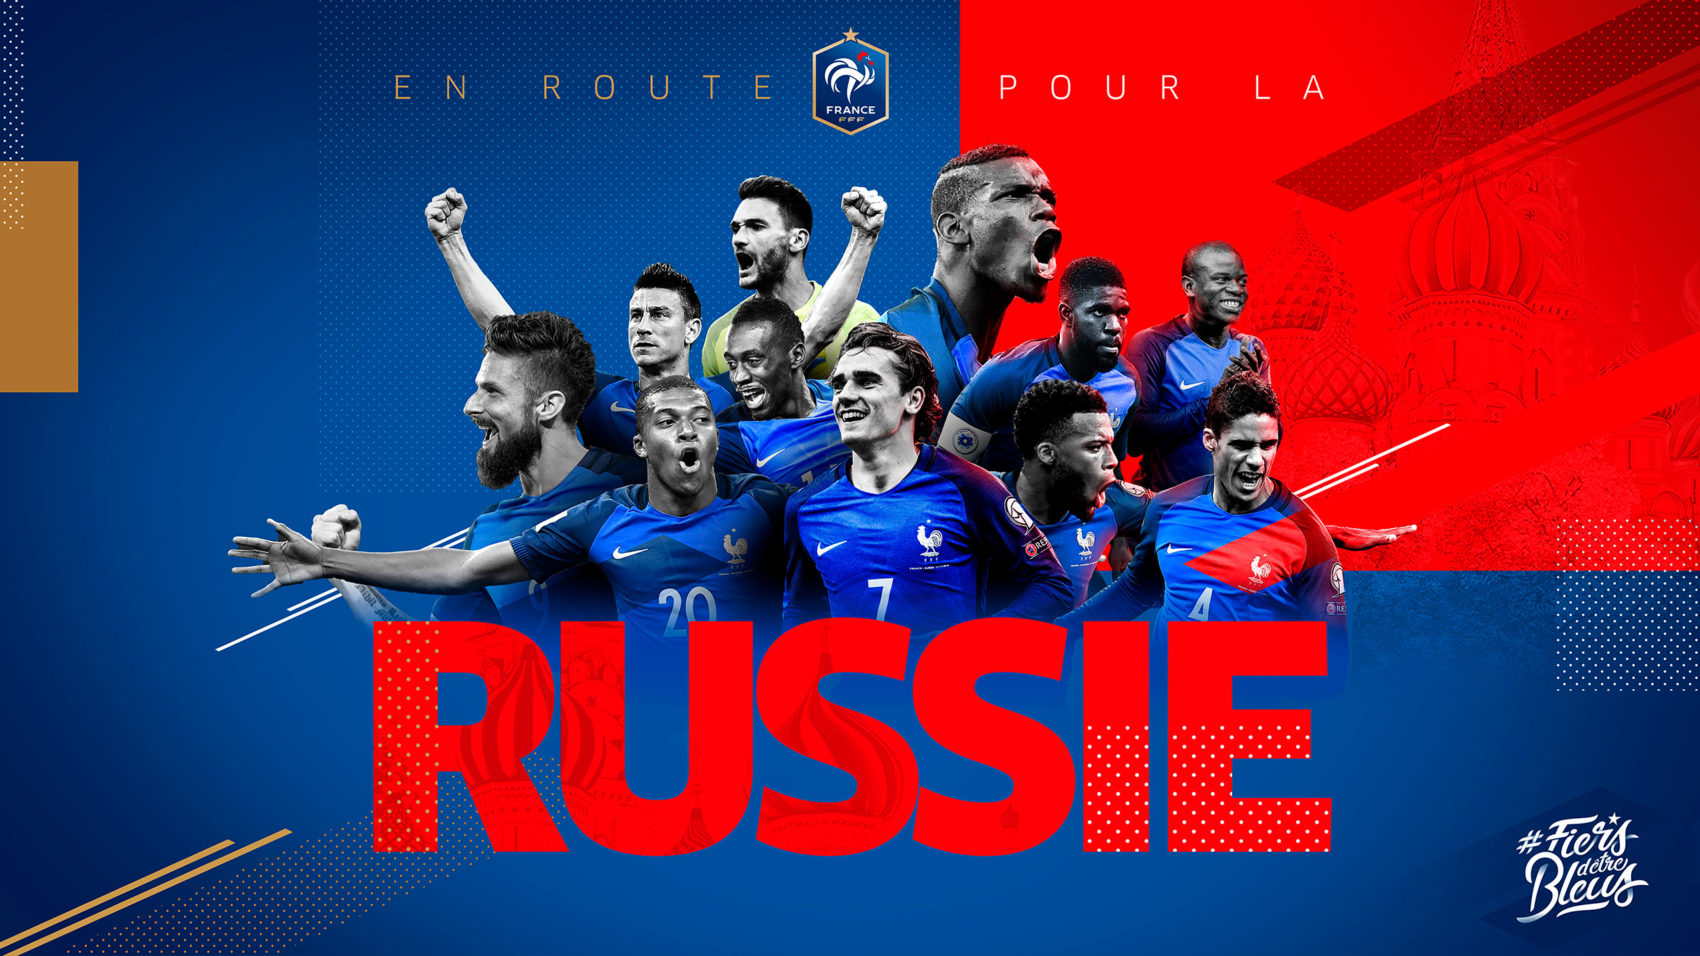 FFF_fiers_detre_bleus_federation_french_francaise_de_football_champions_monde_coupe_du_monde_world_cup